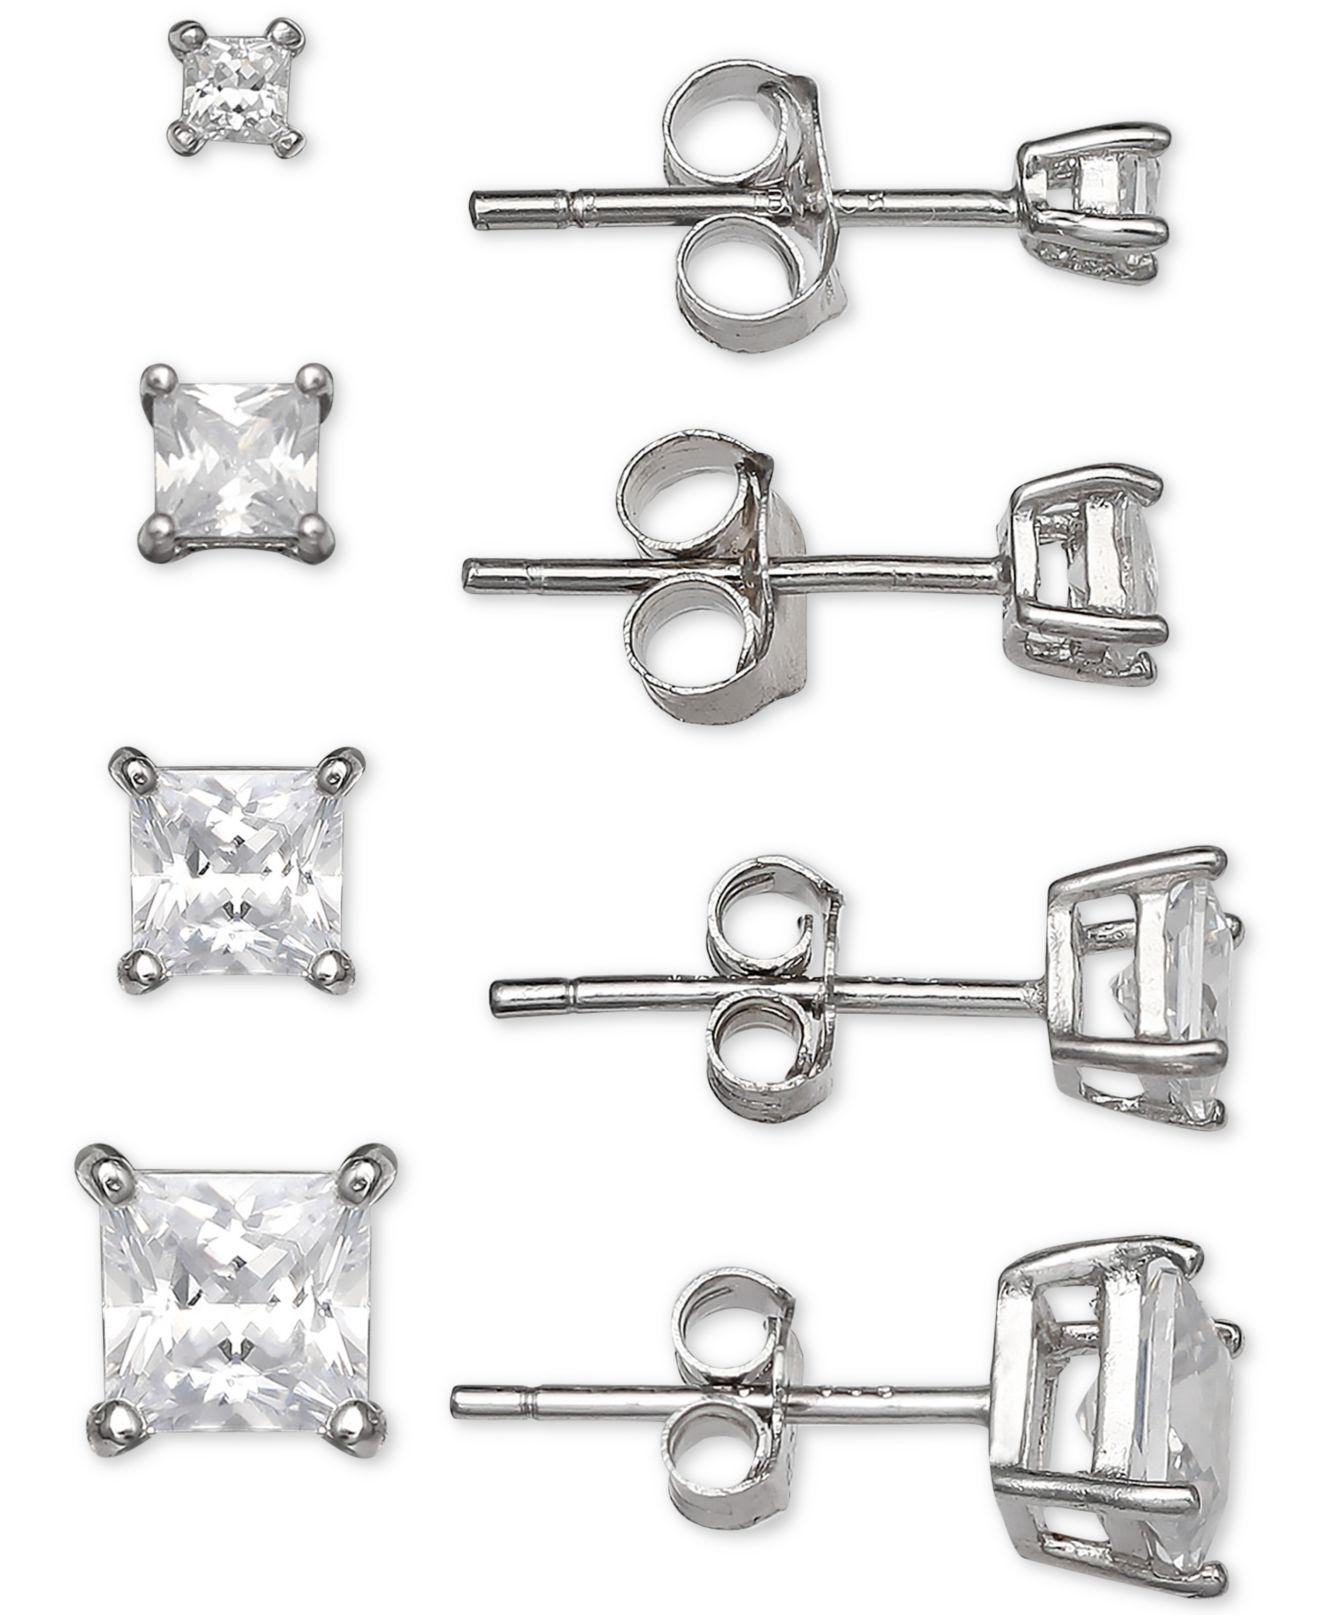 148fc1fdc Giani Bernini. Women's Metallic 4-pc. Set Cubic Zirconia Princess Stud  Earrings In Sterling Silver ...